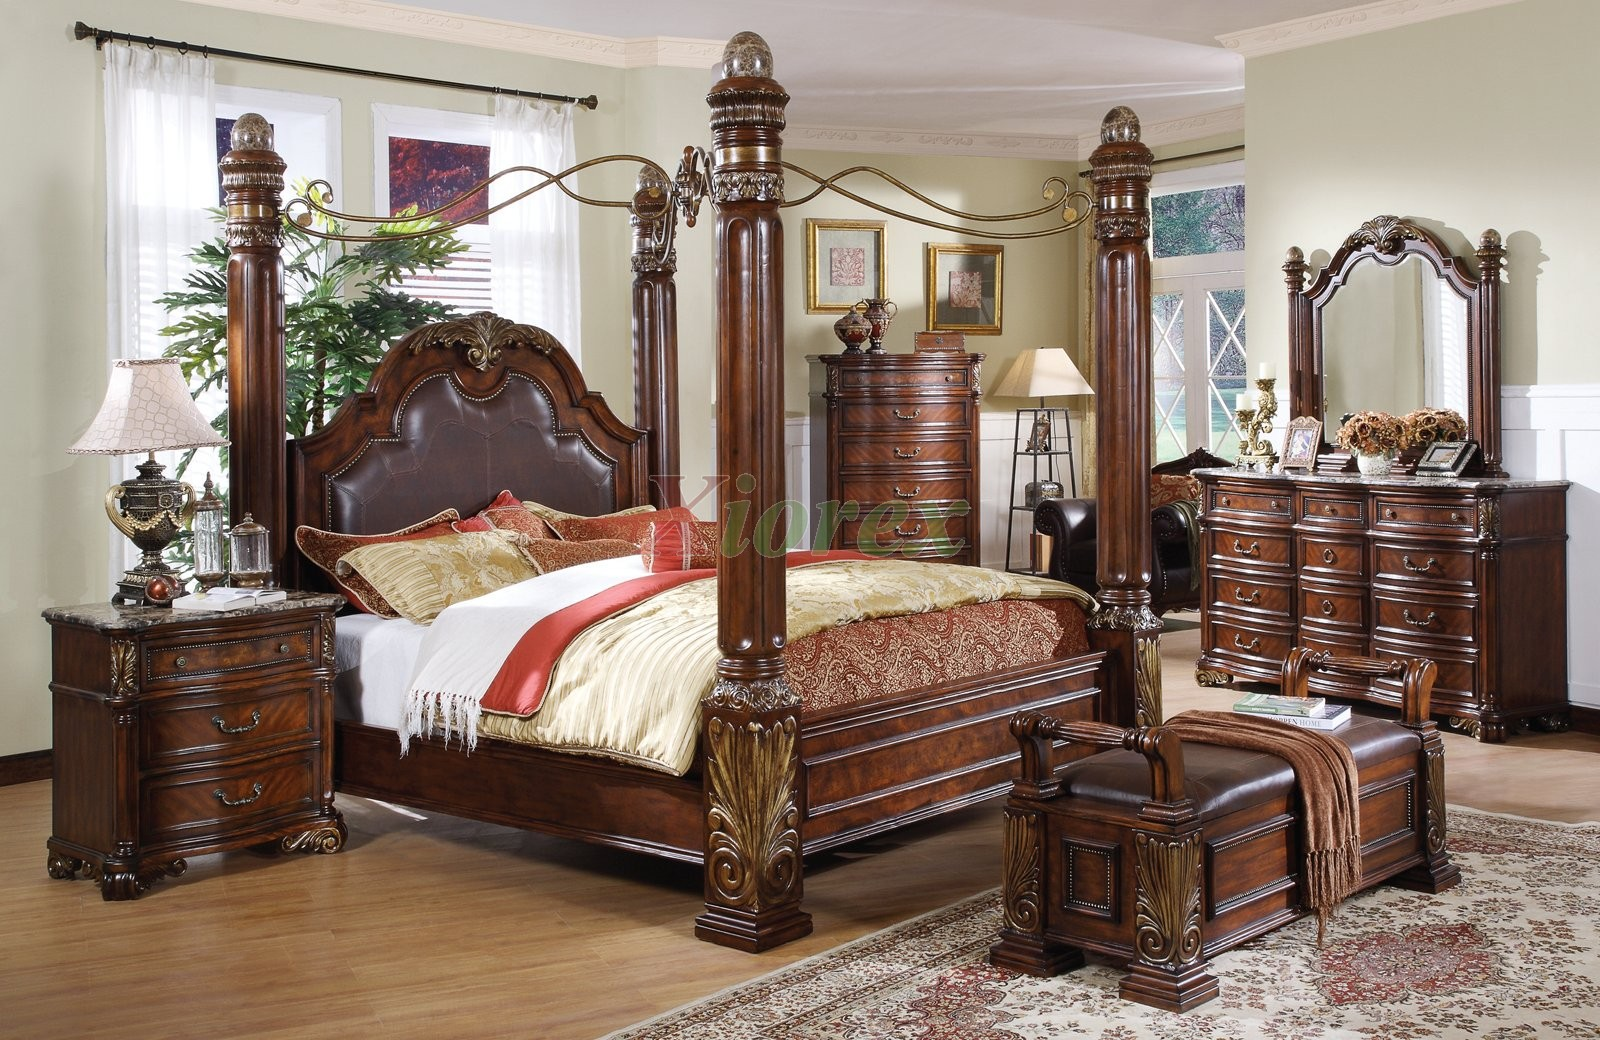 Home Accents Decor Outlet